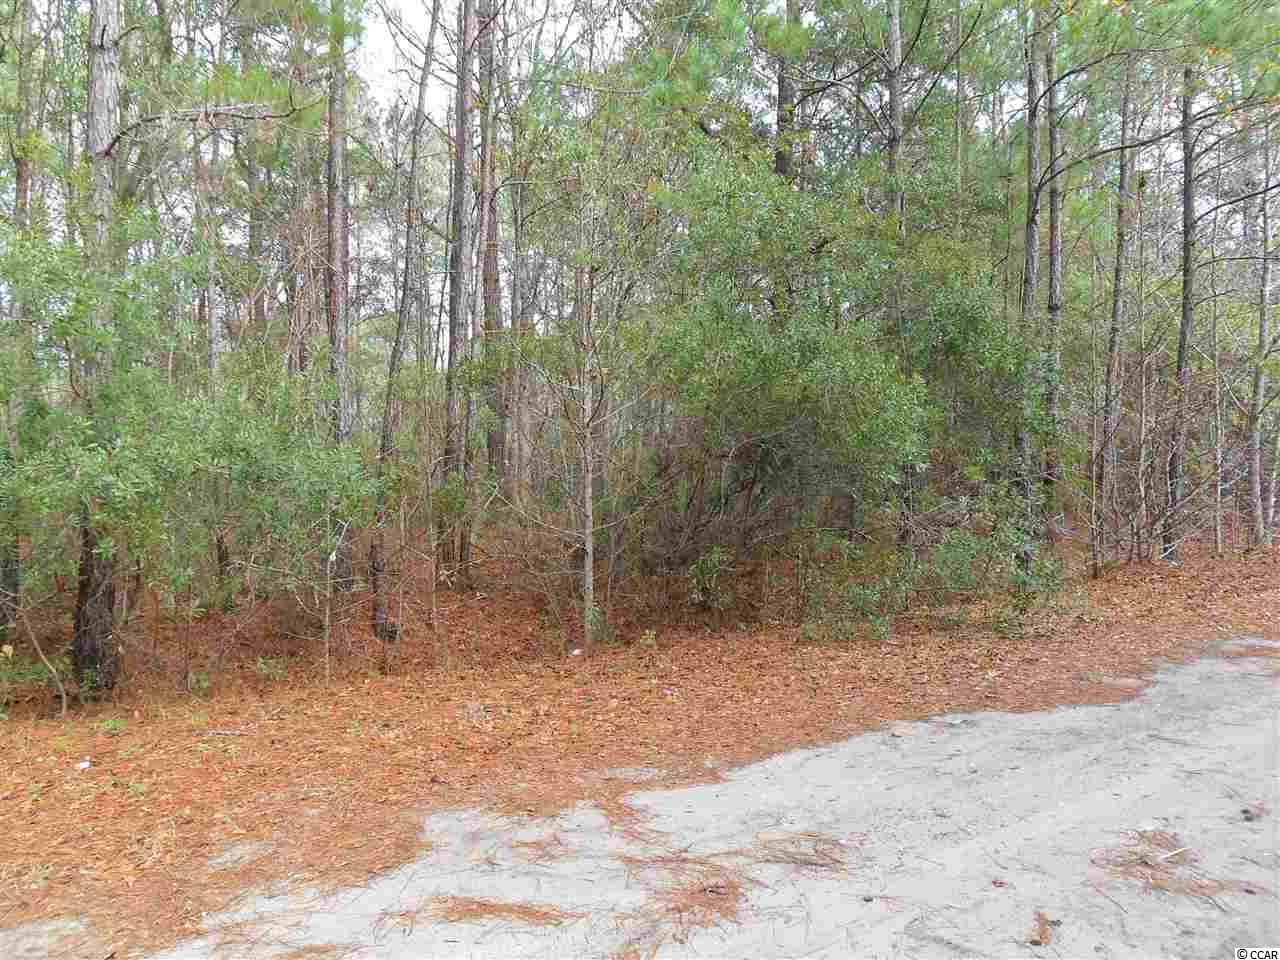 THIS IS LOT #1, WHICH IS ONE OF THREE LOTS IN A LARGER PARCEL, THAT ARE ALL FOR SALE. THE LOT IS NON-BUILDABLE UNTIL CONDITIONS OF THE GEORGETOWN COUNTY WATER AND SEWER DISTRICT EXTENSION POLICY ARE MET. TAP-IN-FEES MUST BE PAID BY THE PURCHASER. Square footage/acreage is approximate and not guaranteed. Buyer is responsible for verification.